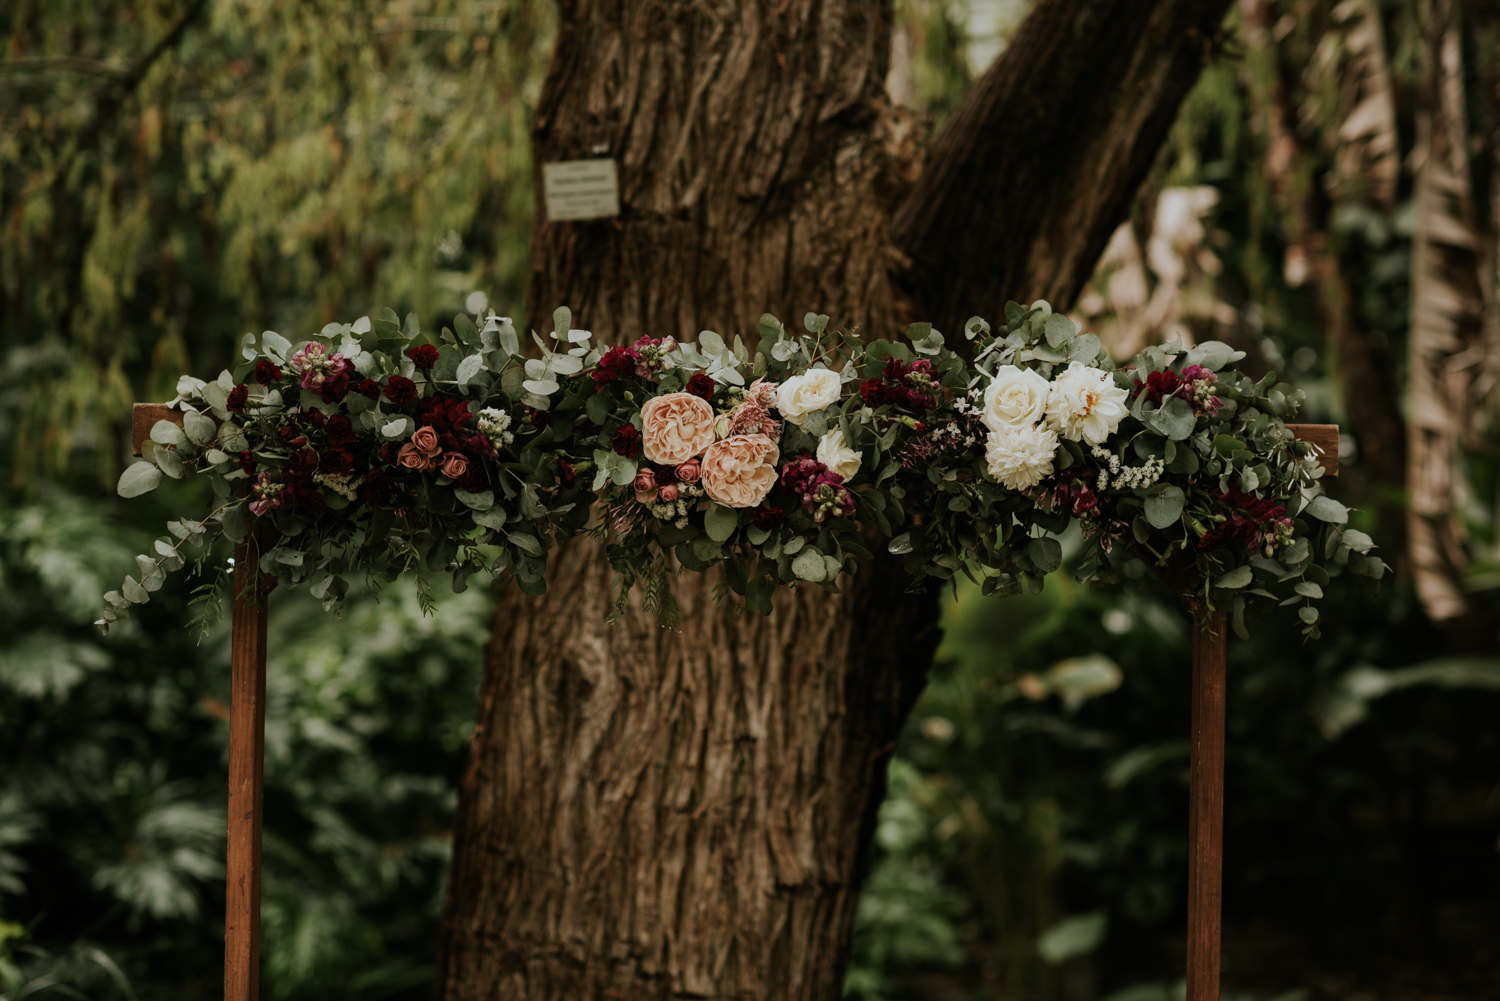 Brisbane Wedding Photographer | Engagement-Elopement Photography | Factory51-City Botantic Gardens Wedding-21.jpg